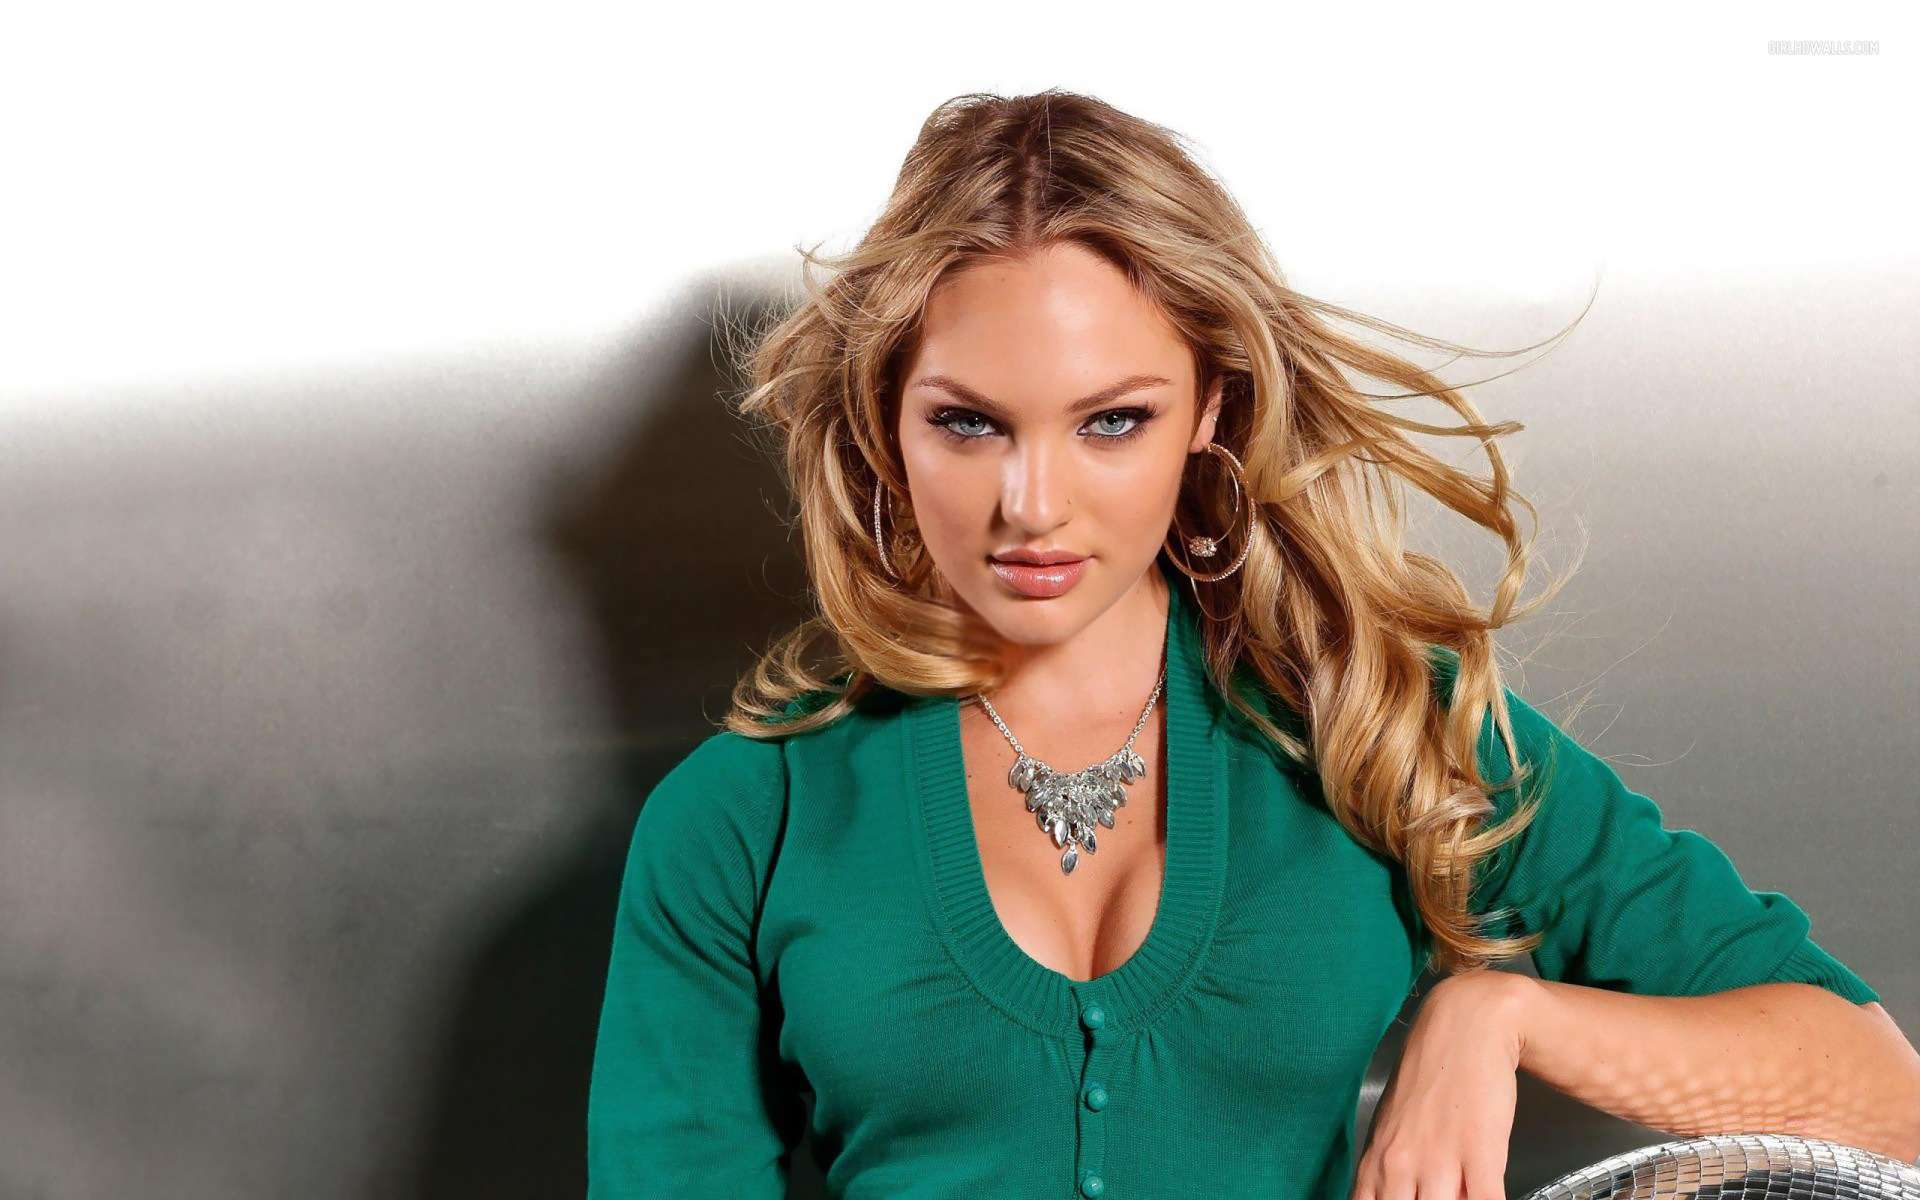 Nice Car Wallpaper Hd Candice Swanepoel 33 Wallpapers Hd Wallpapers